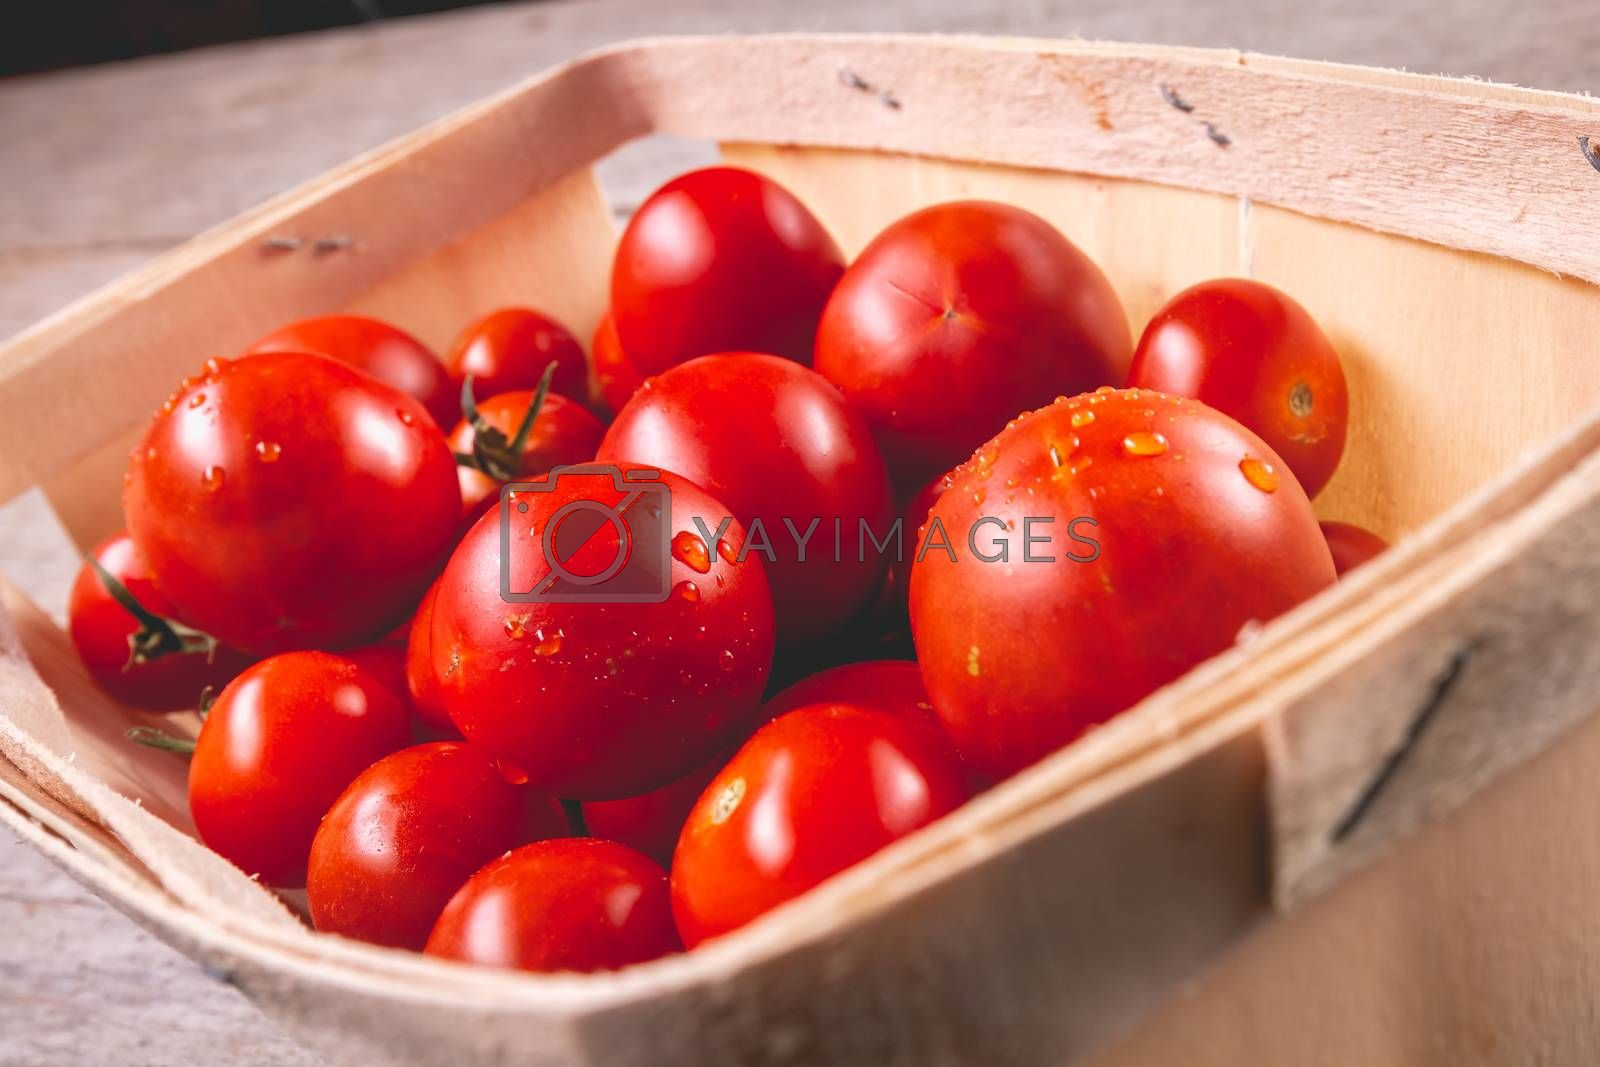 ripe tomatoes in a small wooden crate in studio